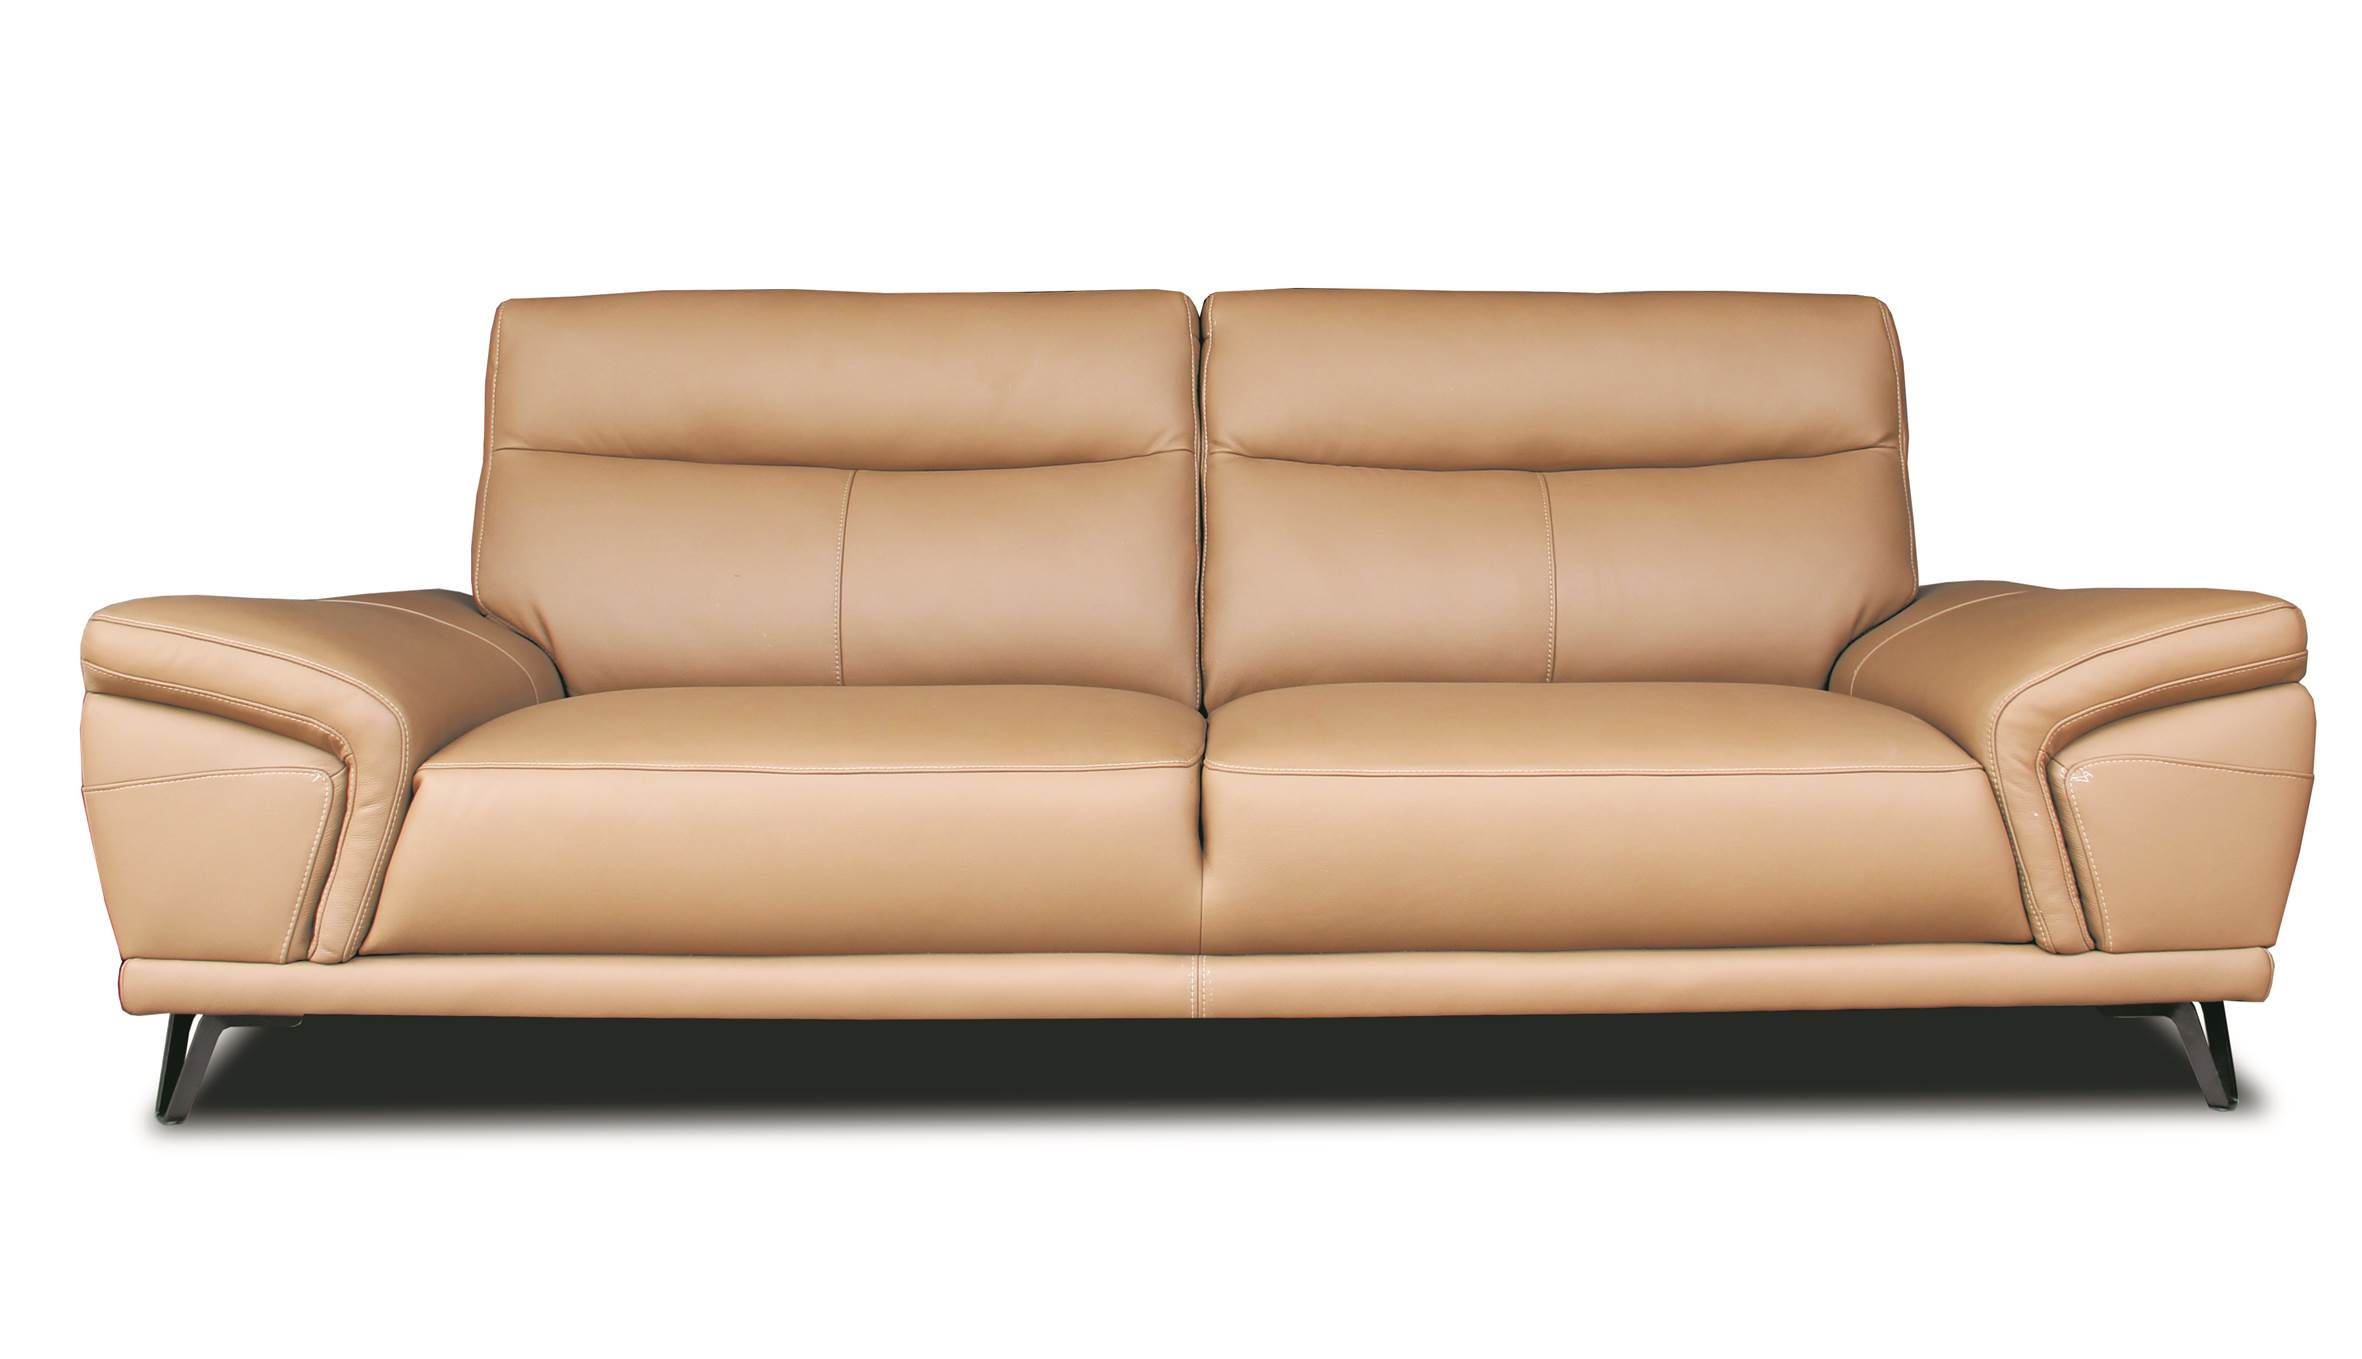 leather sofa online singapore electric blue chesterfield awesome home